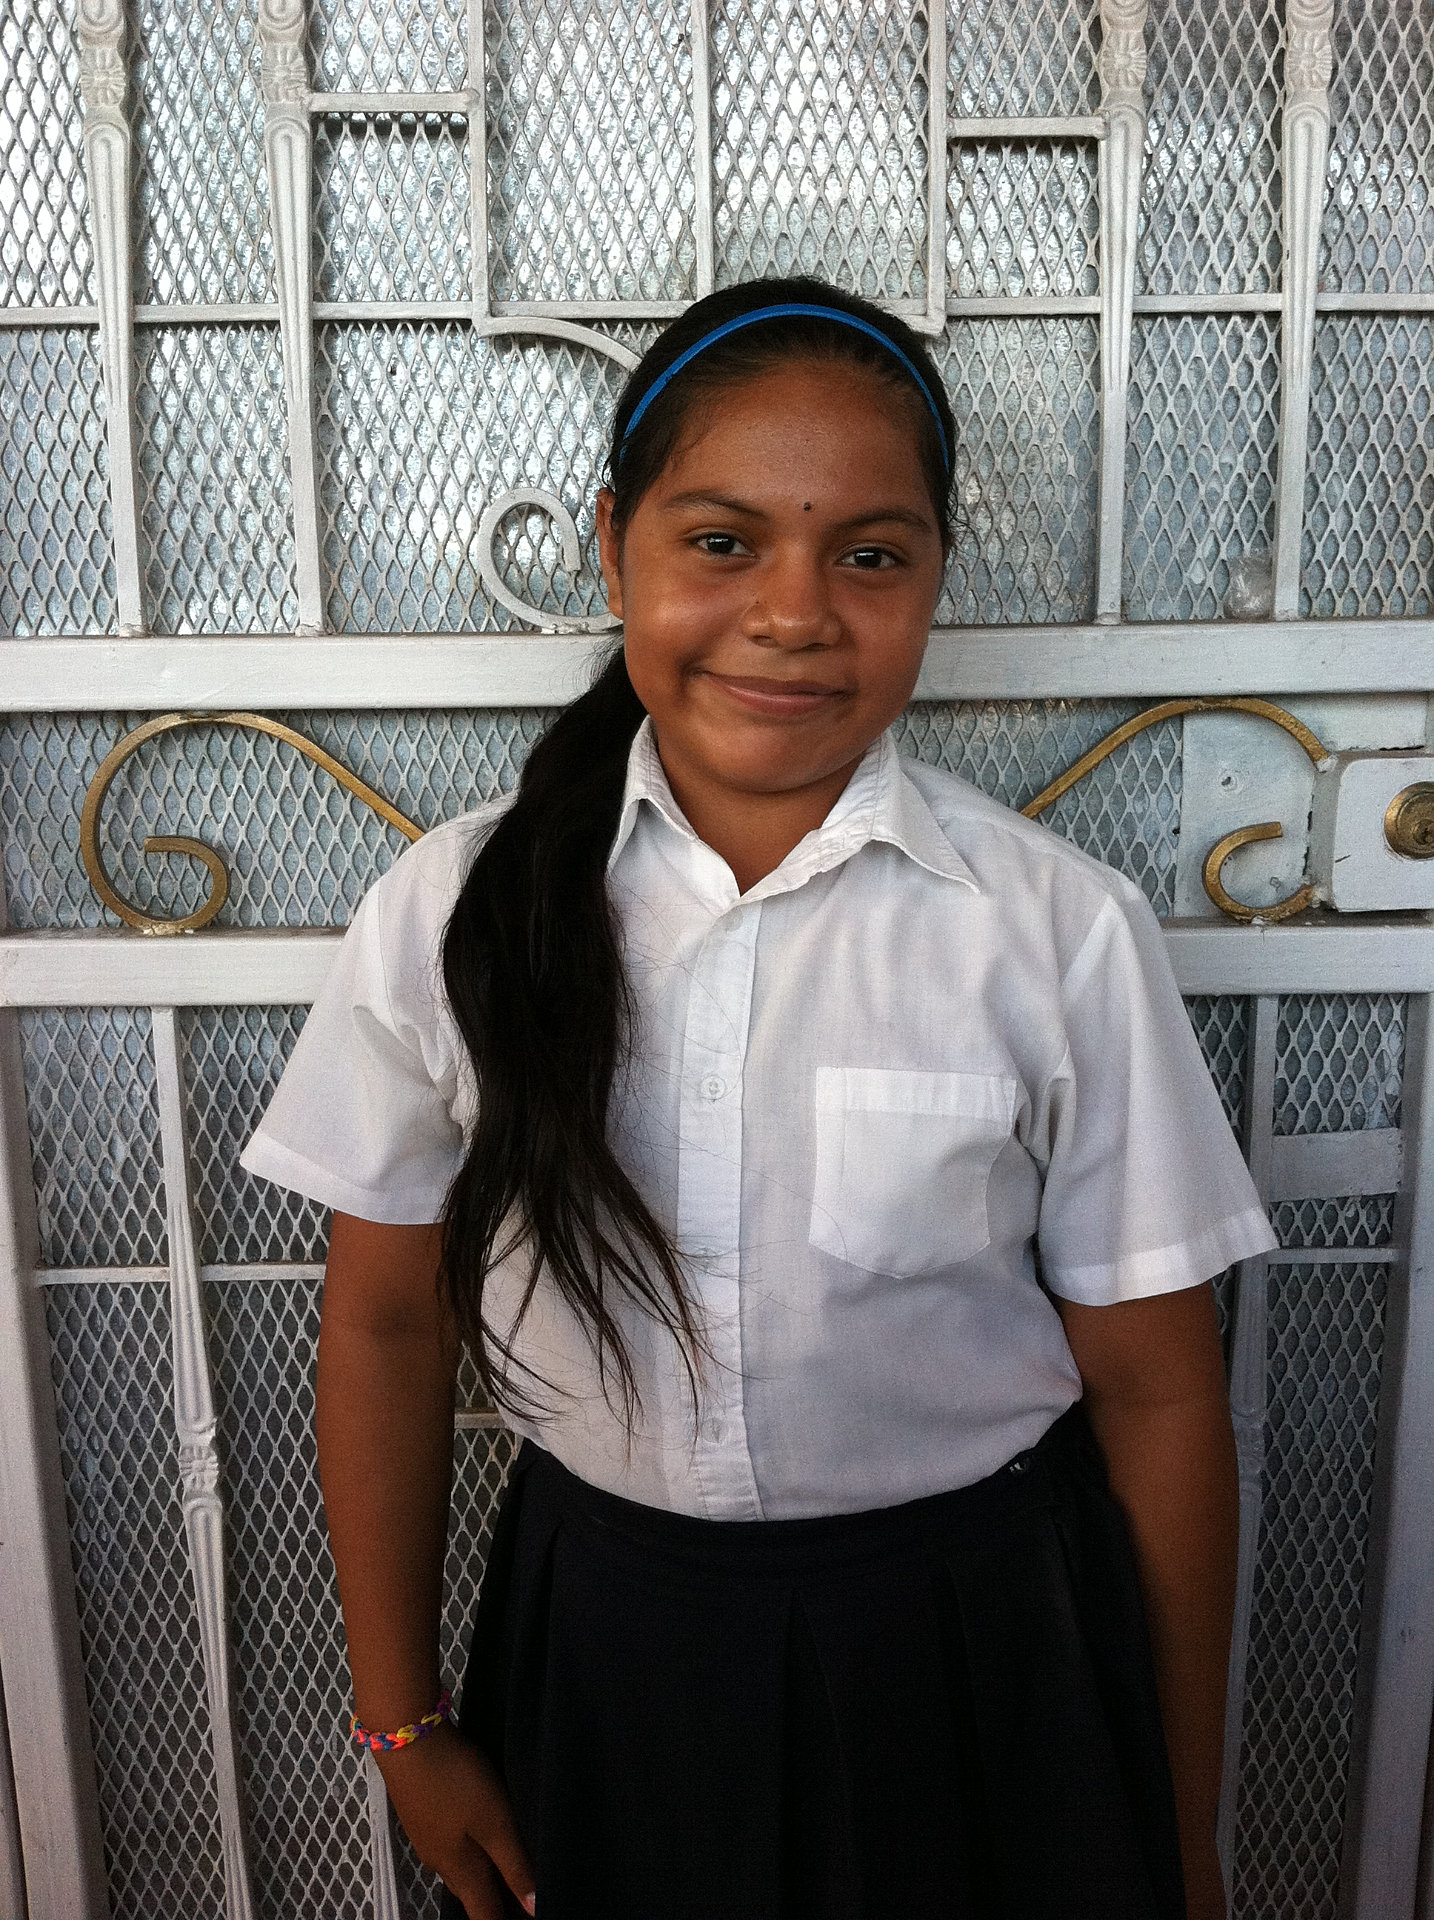 Soccer Without Borders | Mileydi, 12 years old